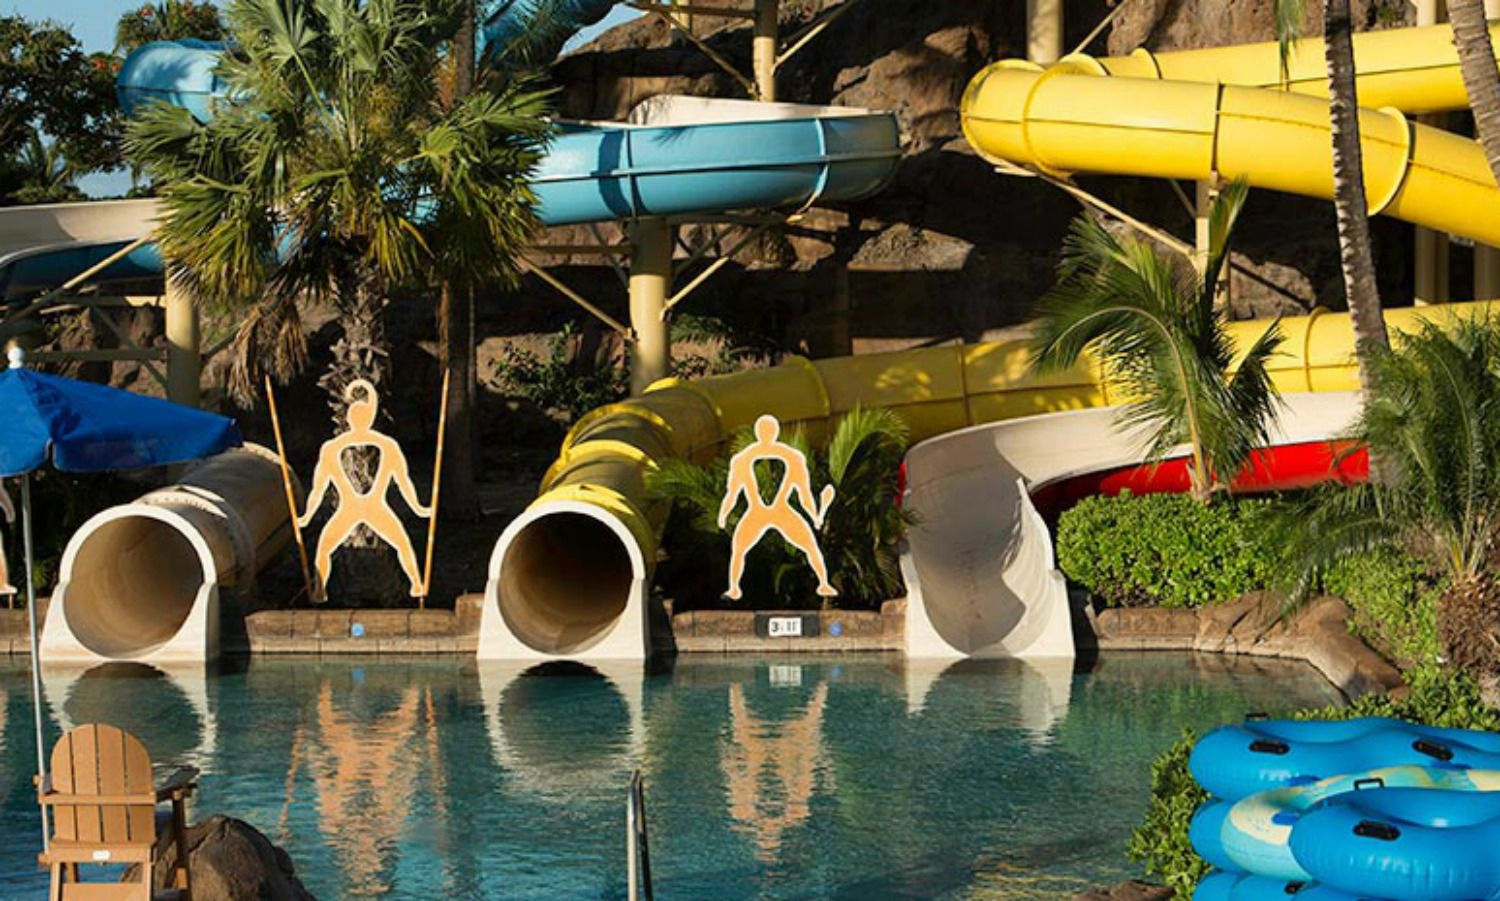 The Best of the West Water Parks